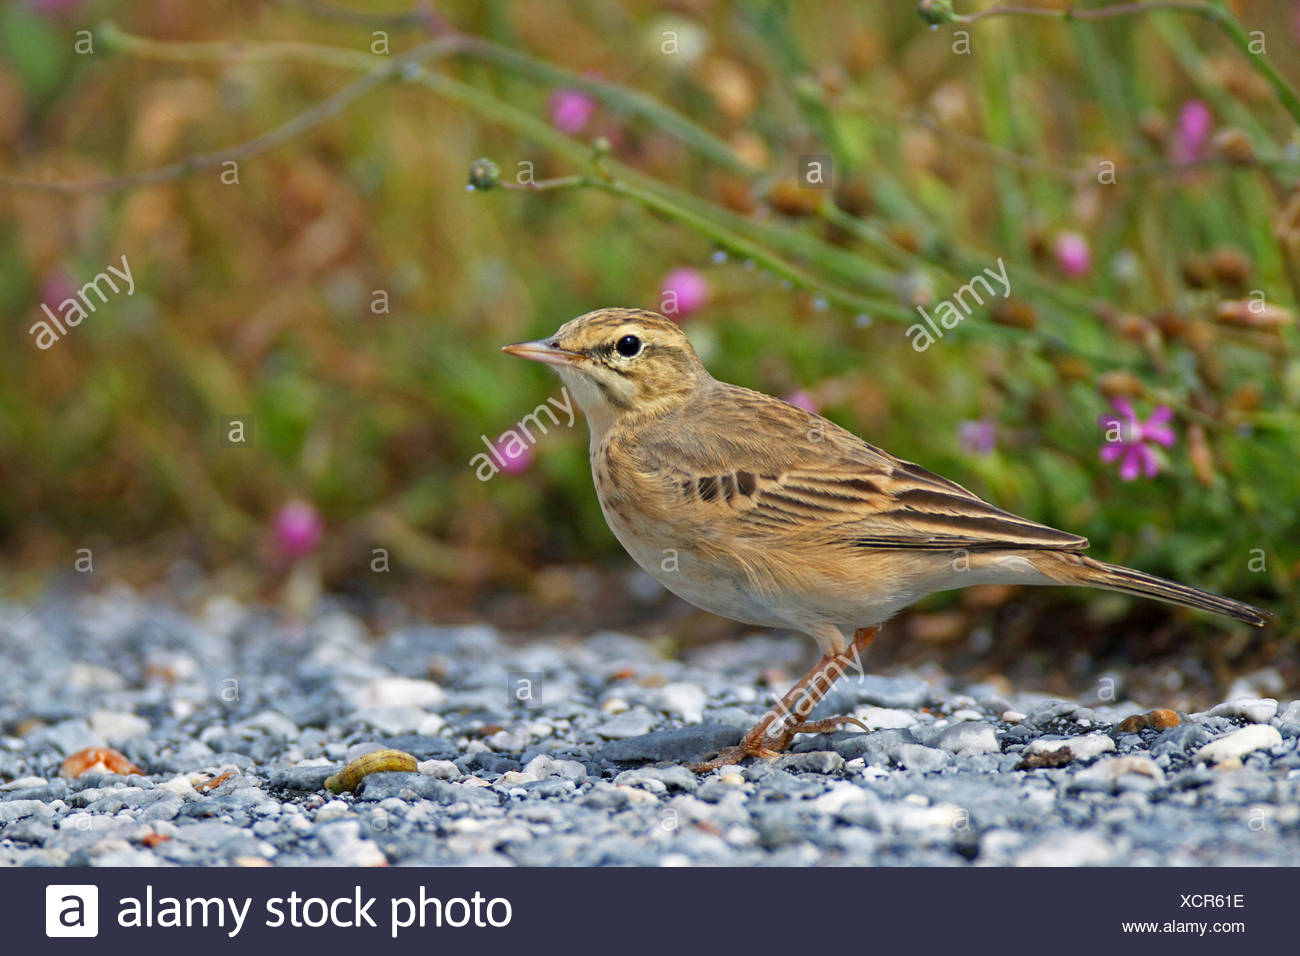 Tawny pitpit (Anthus campestris), standing on the ground, Greece, Lesbos - Stock Image